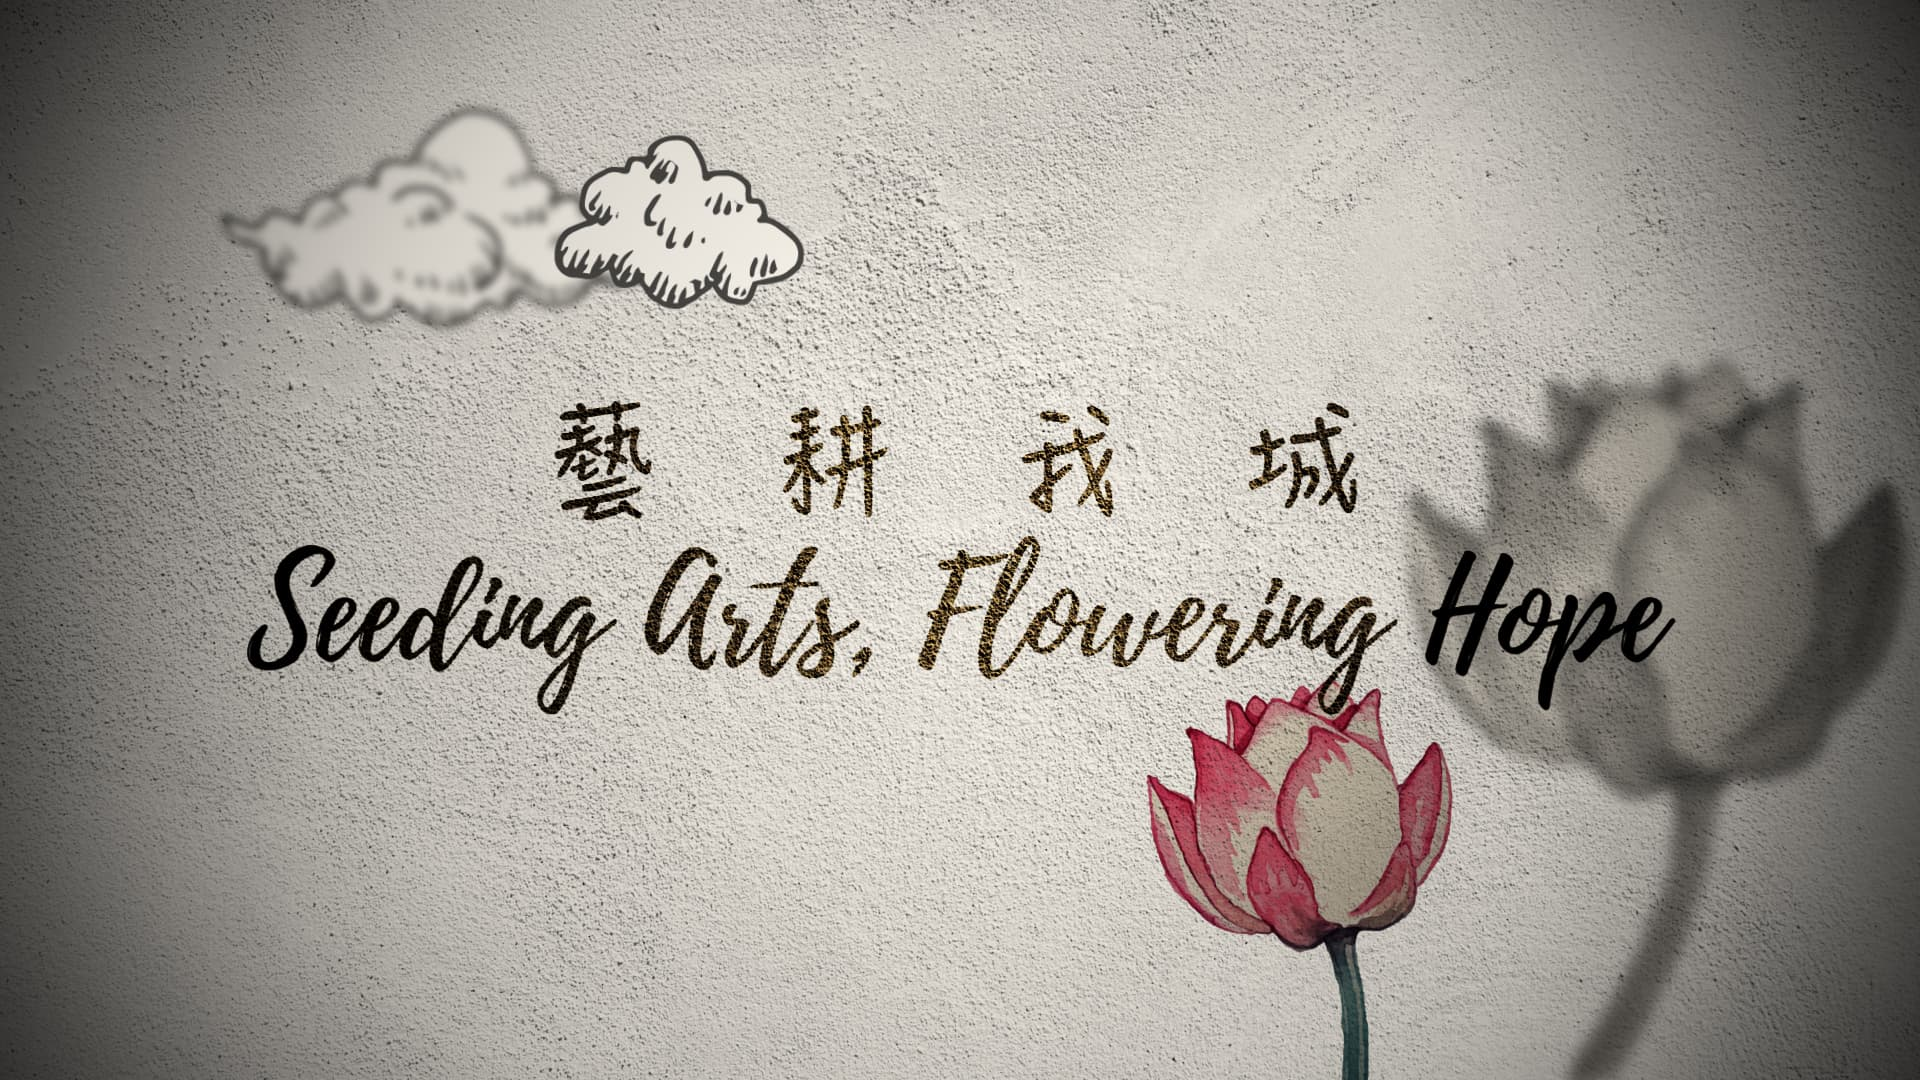 [홍콩/해외문화PD] Seeding Arts Flowering Hope